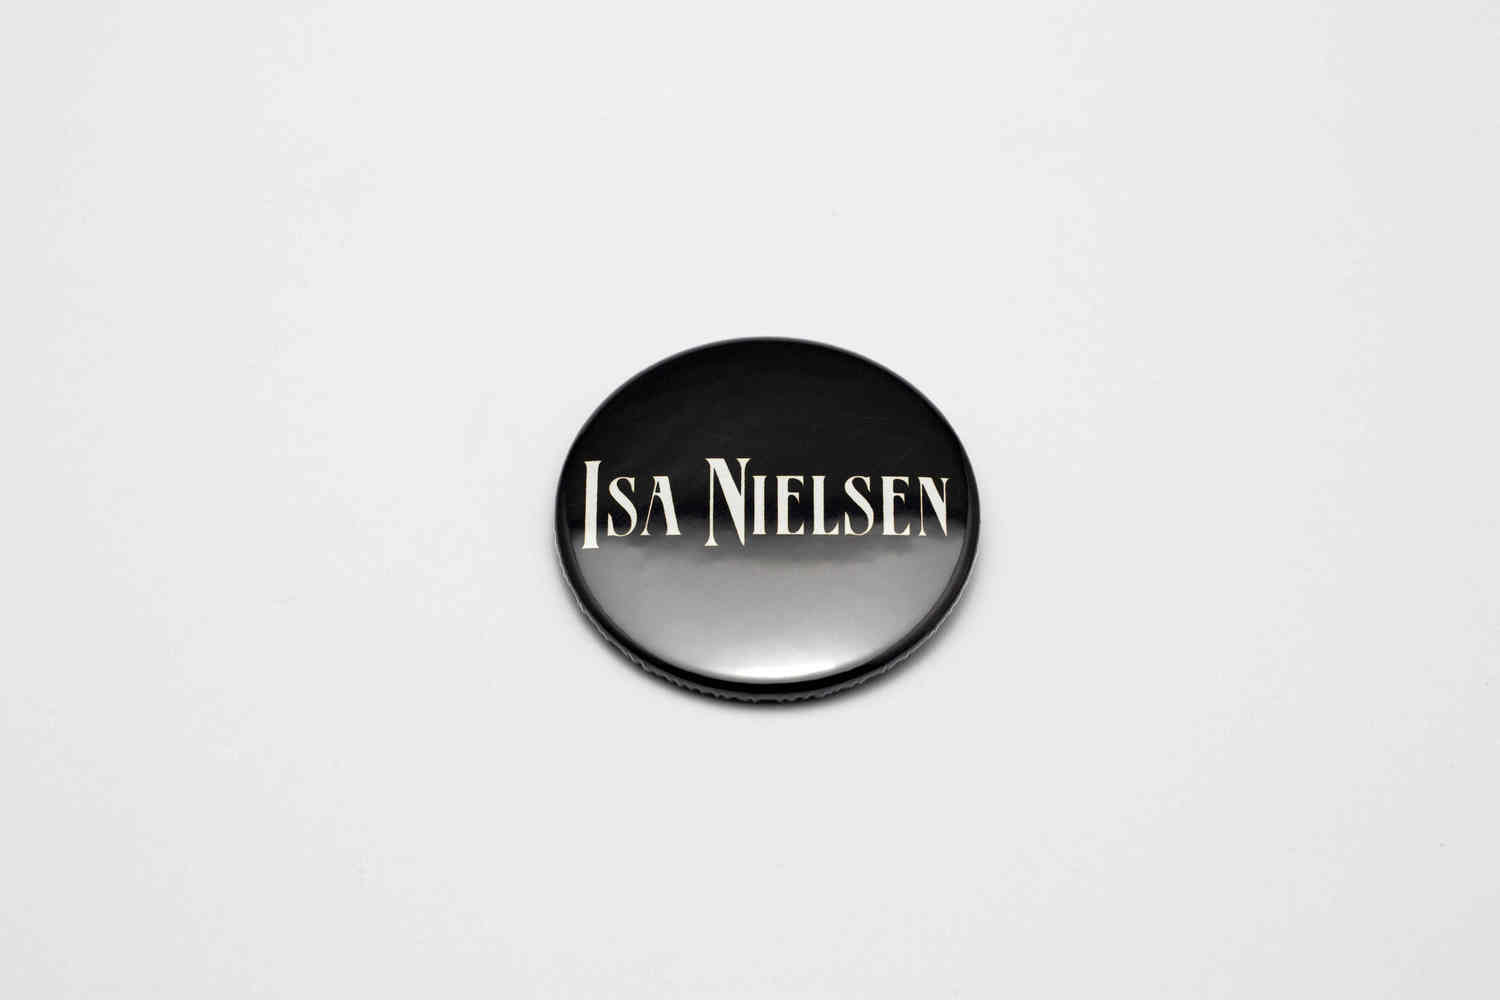 Botton Isa Nielsen - Pin